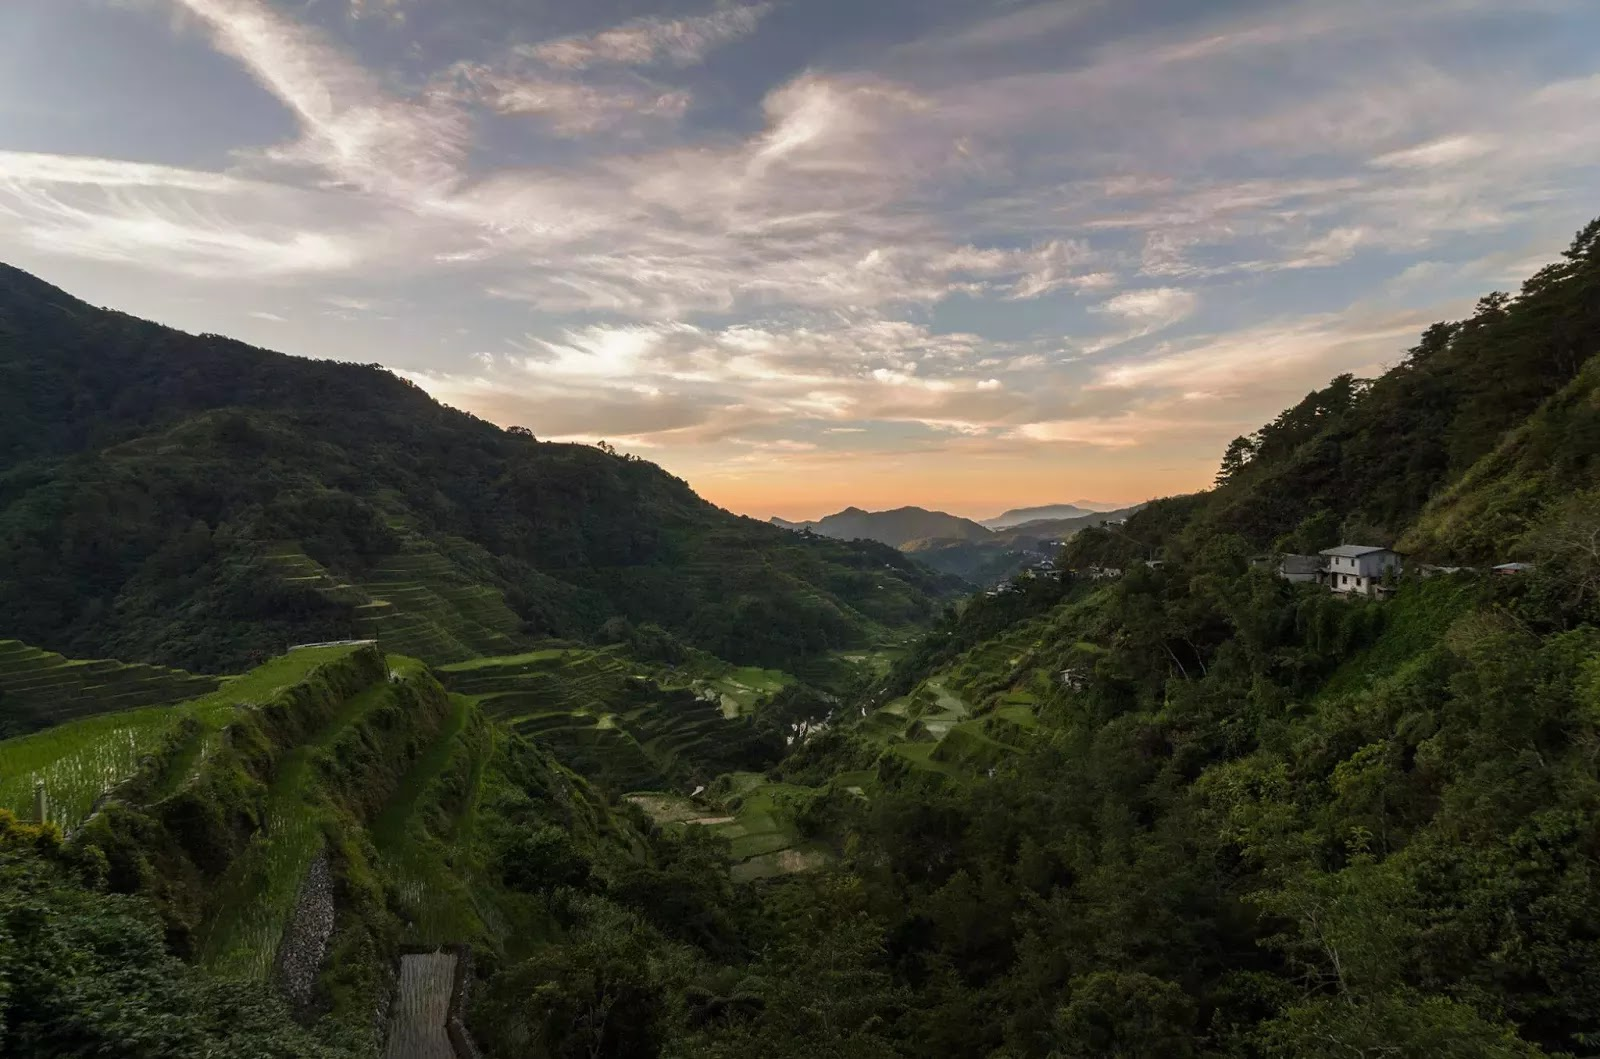 Banaue Rice Terraces NFA - Aguian View Deck Dawn Ifugao Cordillera Administrative Region Philippines